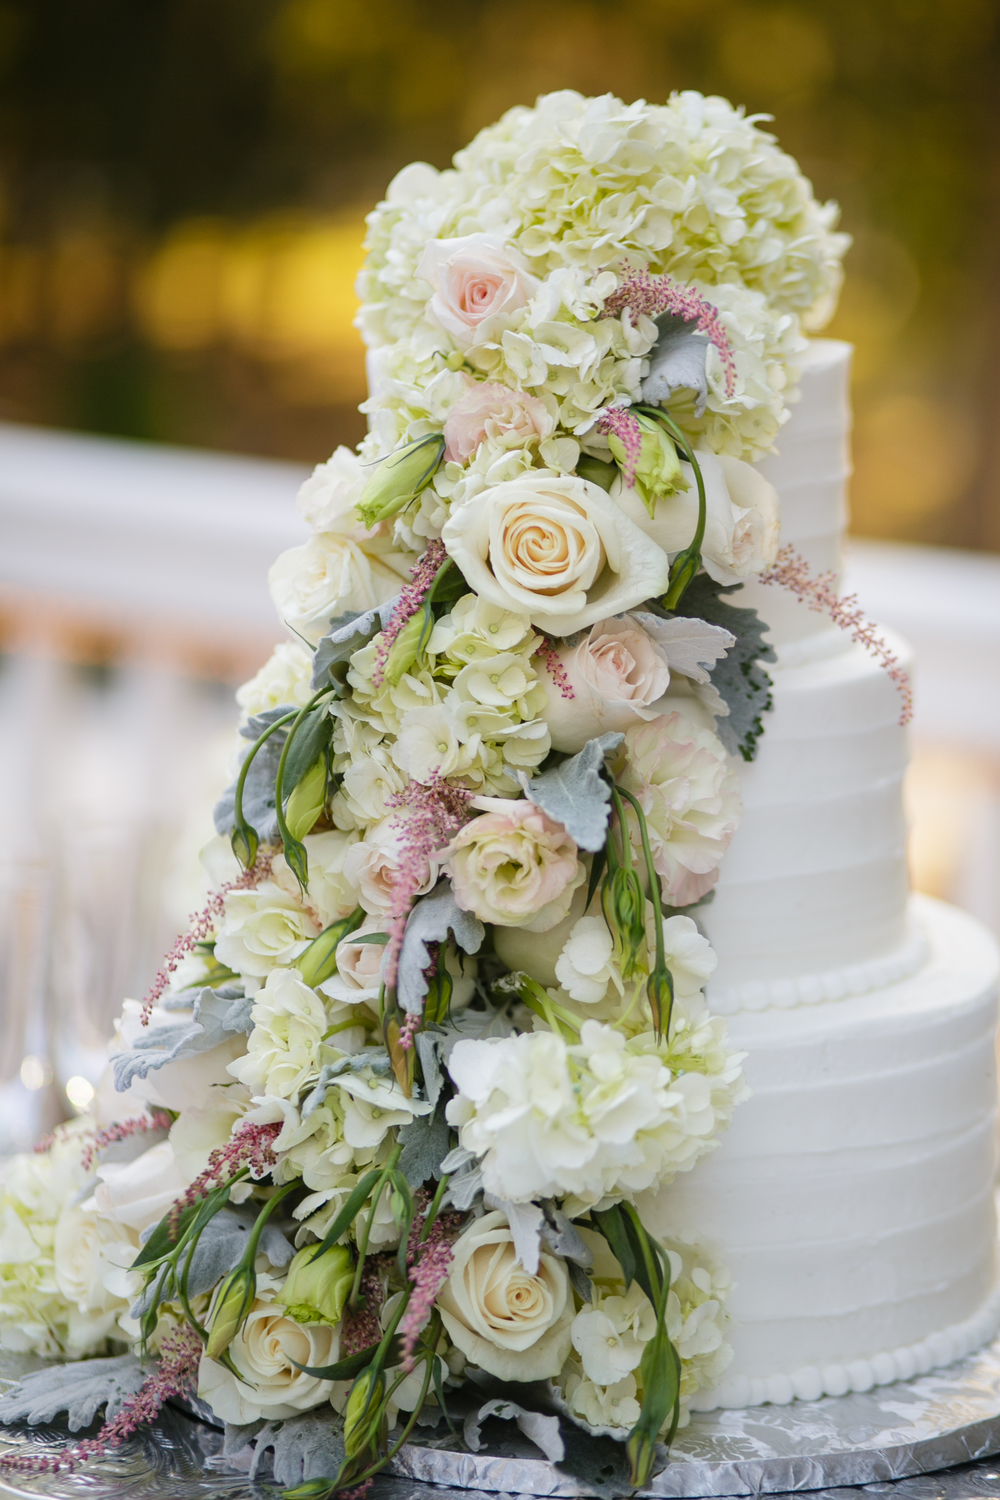 savannah-wedding-magnolia-leaf-details-savannah-soiree